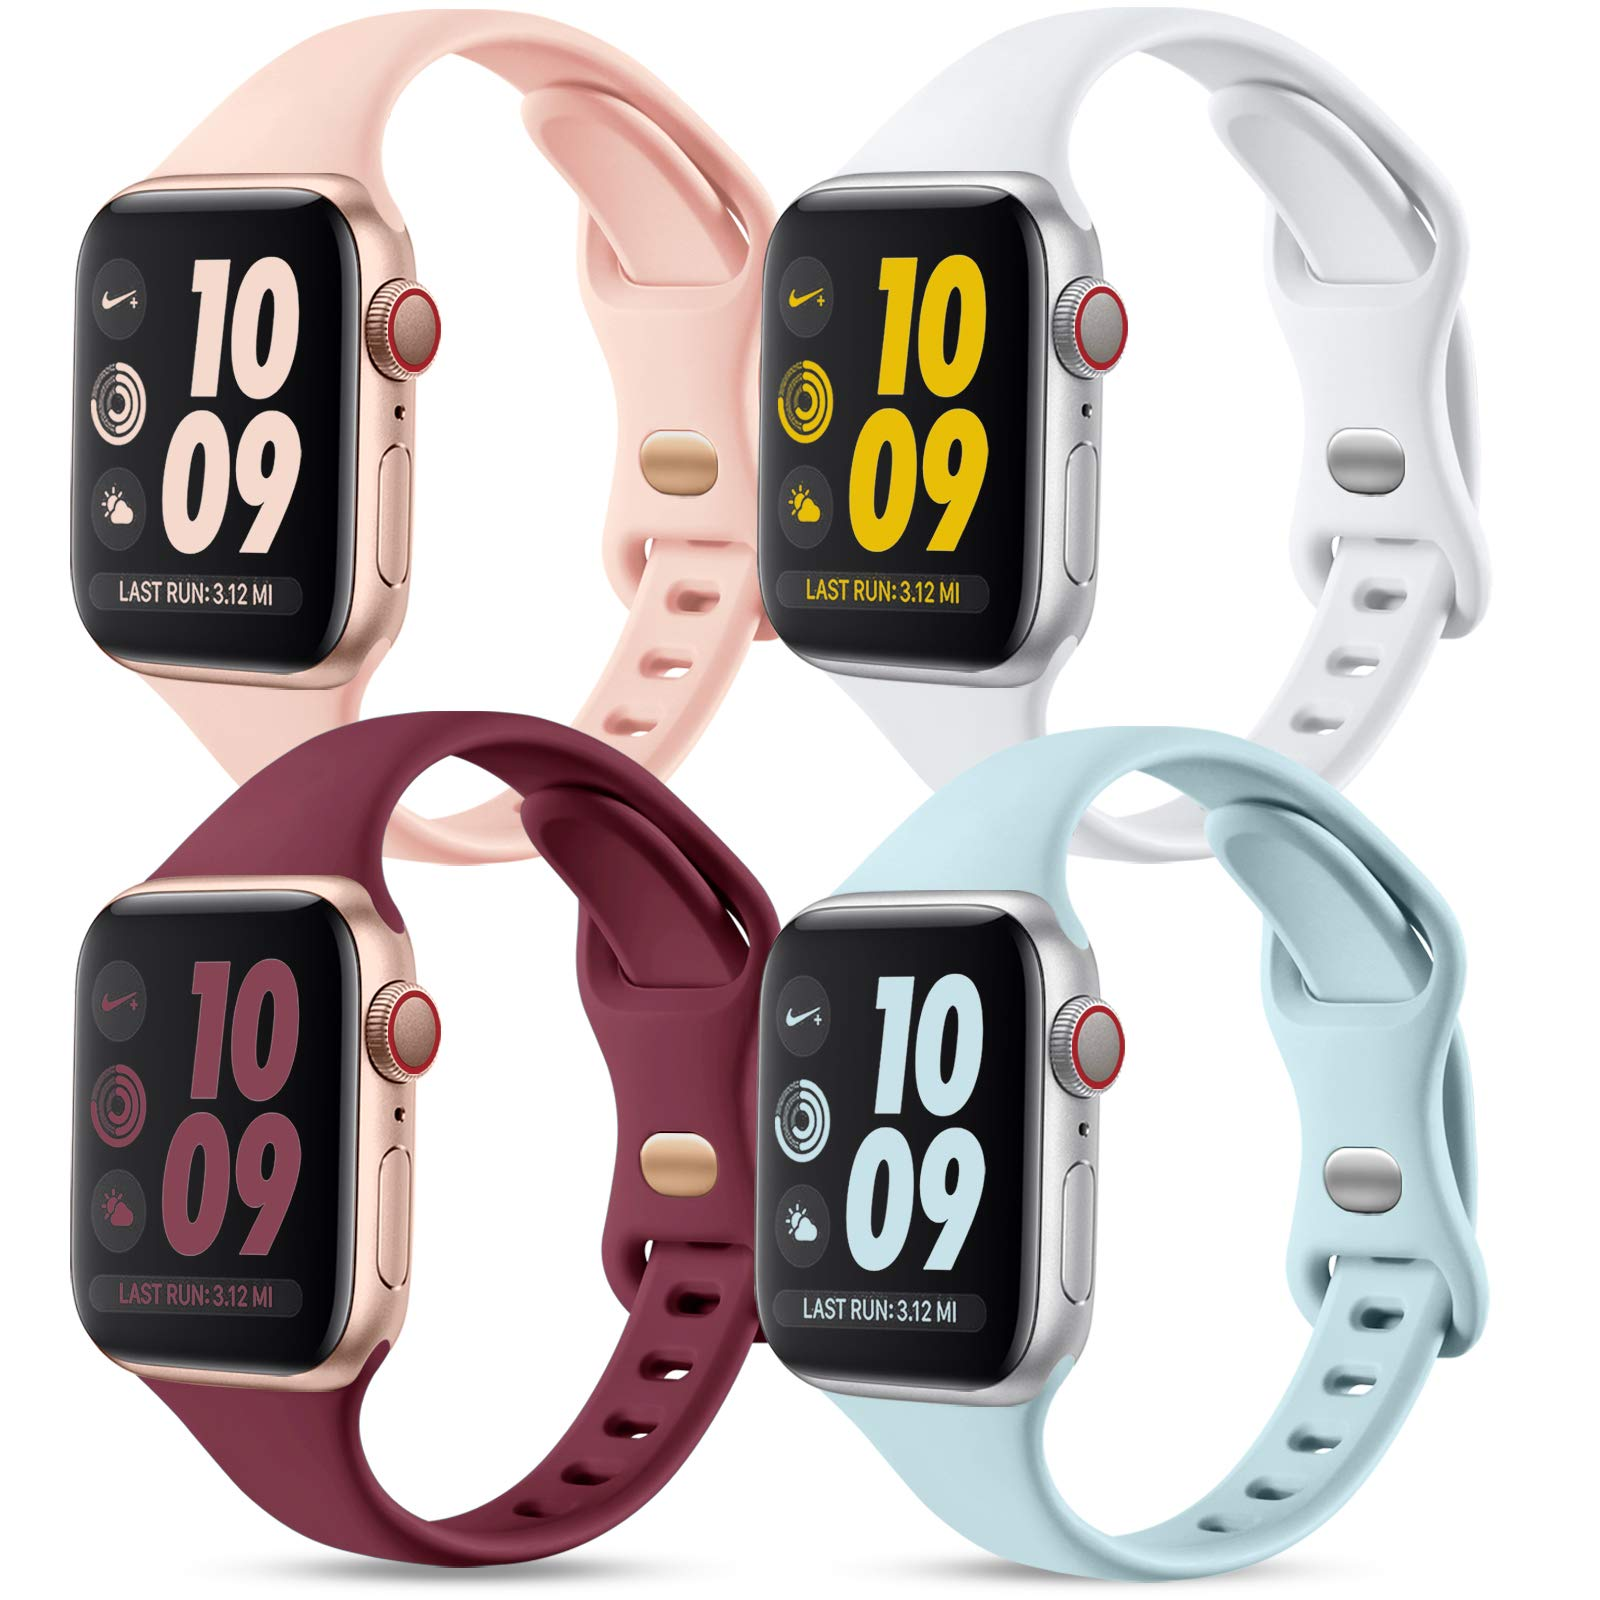 GEAK Compatible with Apple Watch Band 44mm 42mm Series 4 for Women Men, Narrow Soft Silicone Thin Wristband for iWatch SE & Series 6 5 4 3 2 1, 4Pack Mint Green/Sand Pink/White/Wine Red